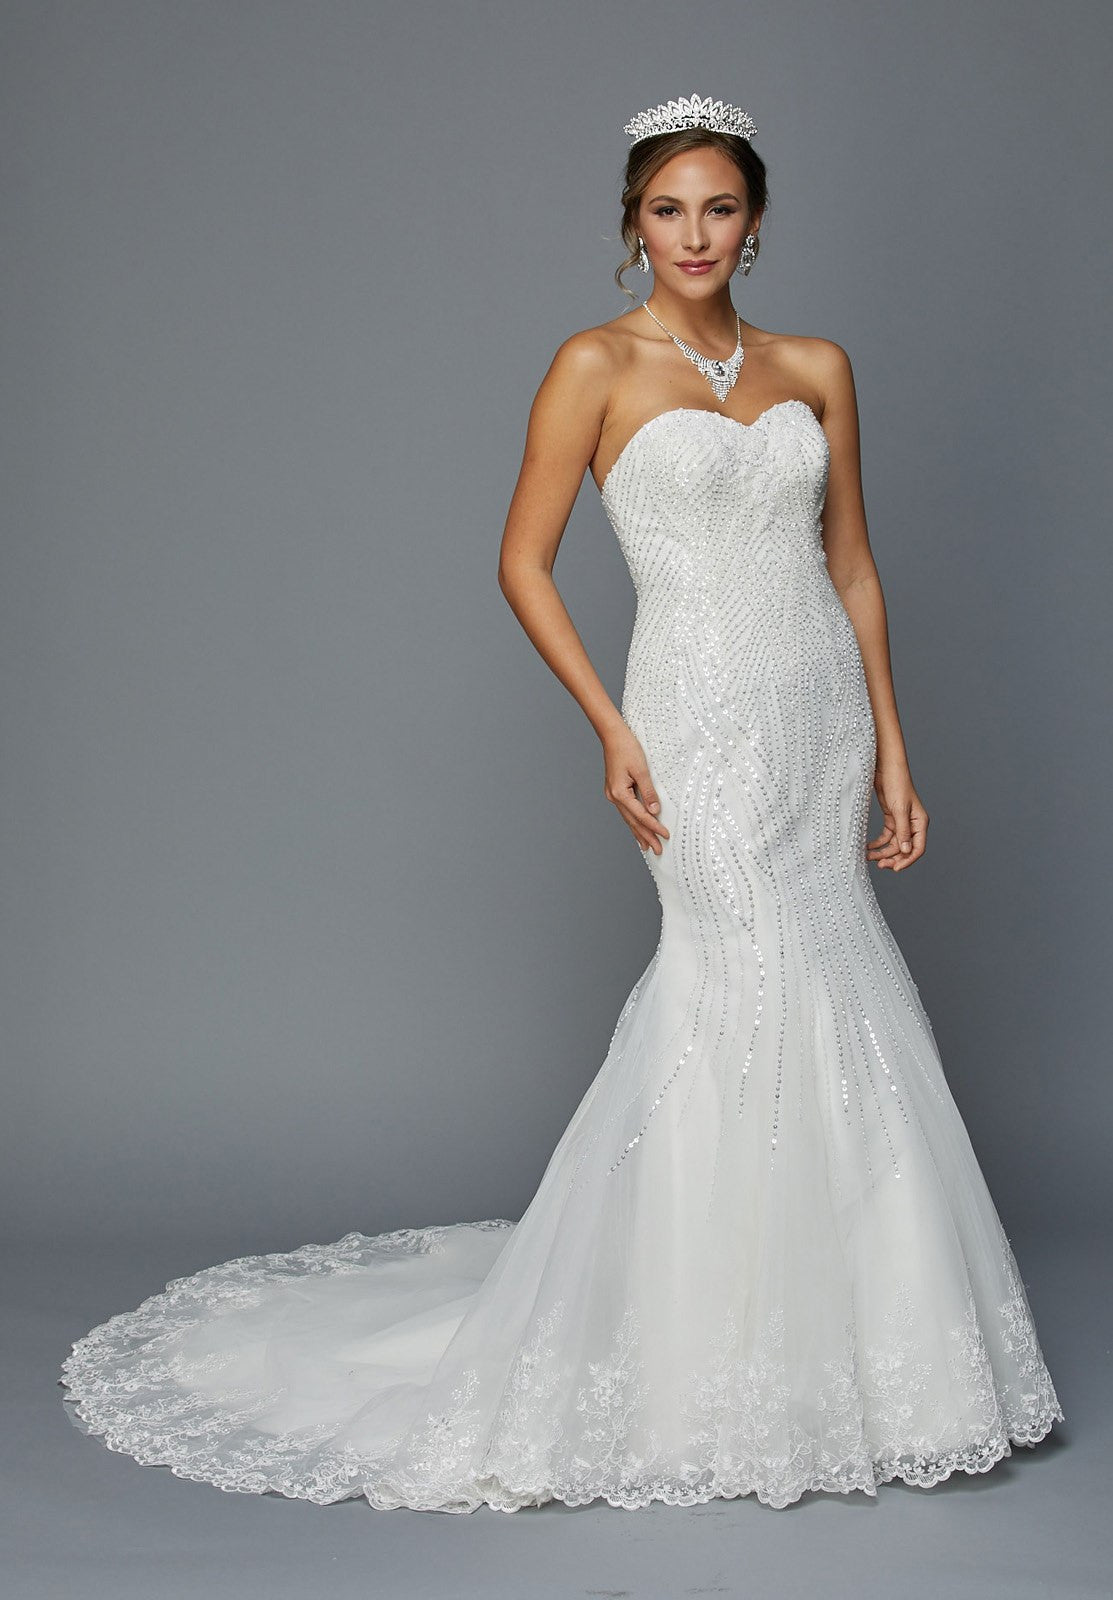 juliet 359 sequins embellished mermaid style wedding dress